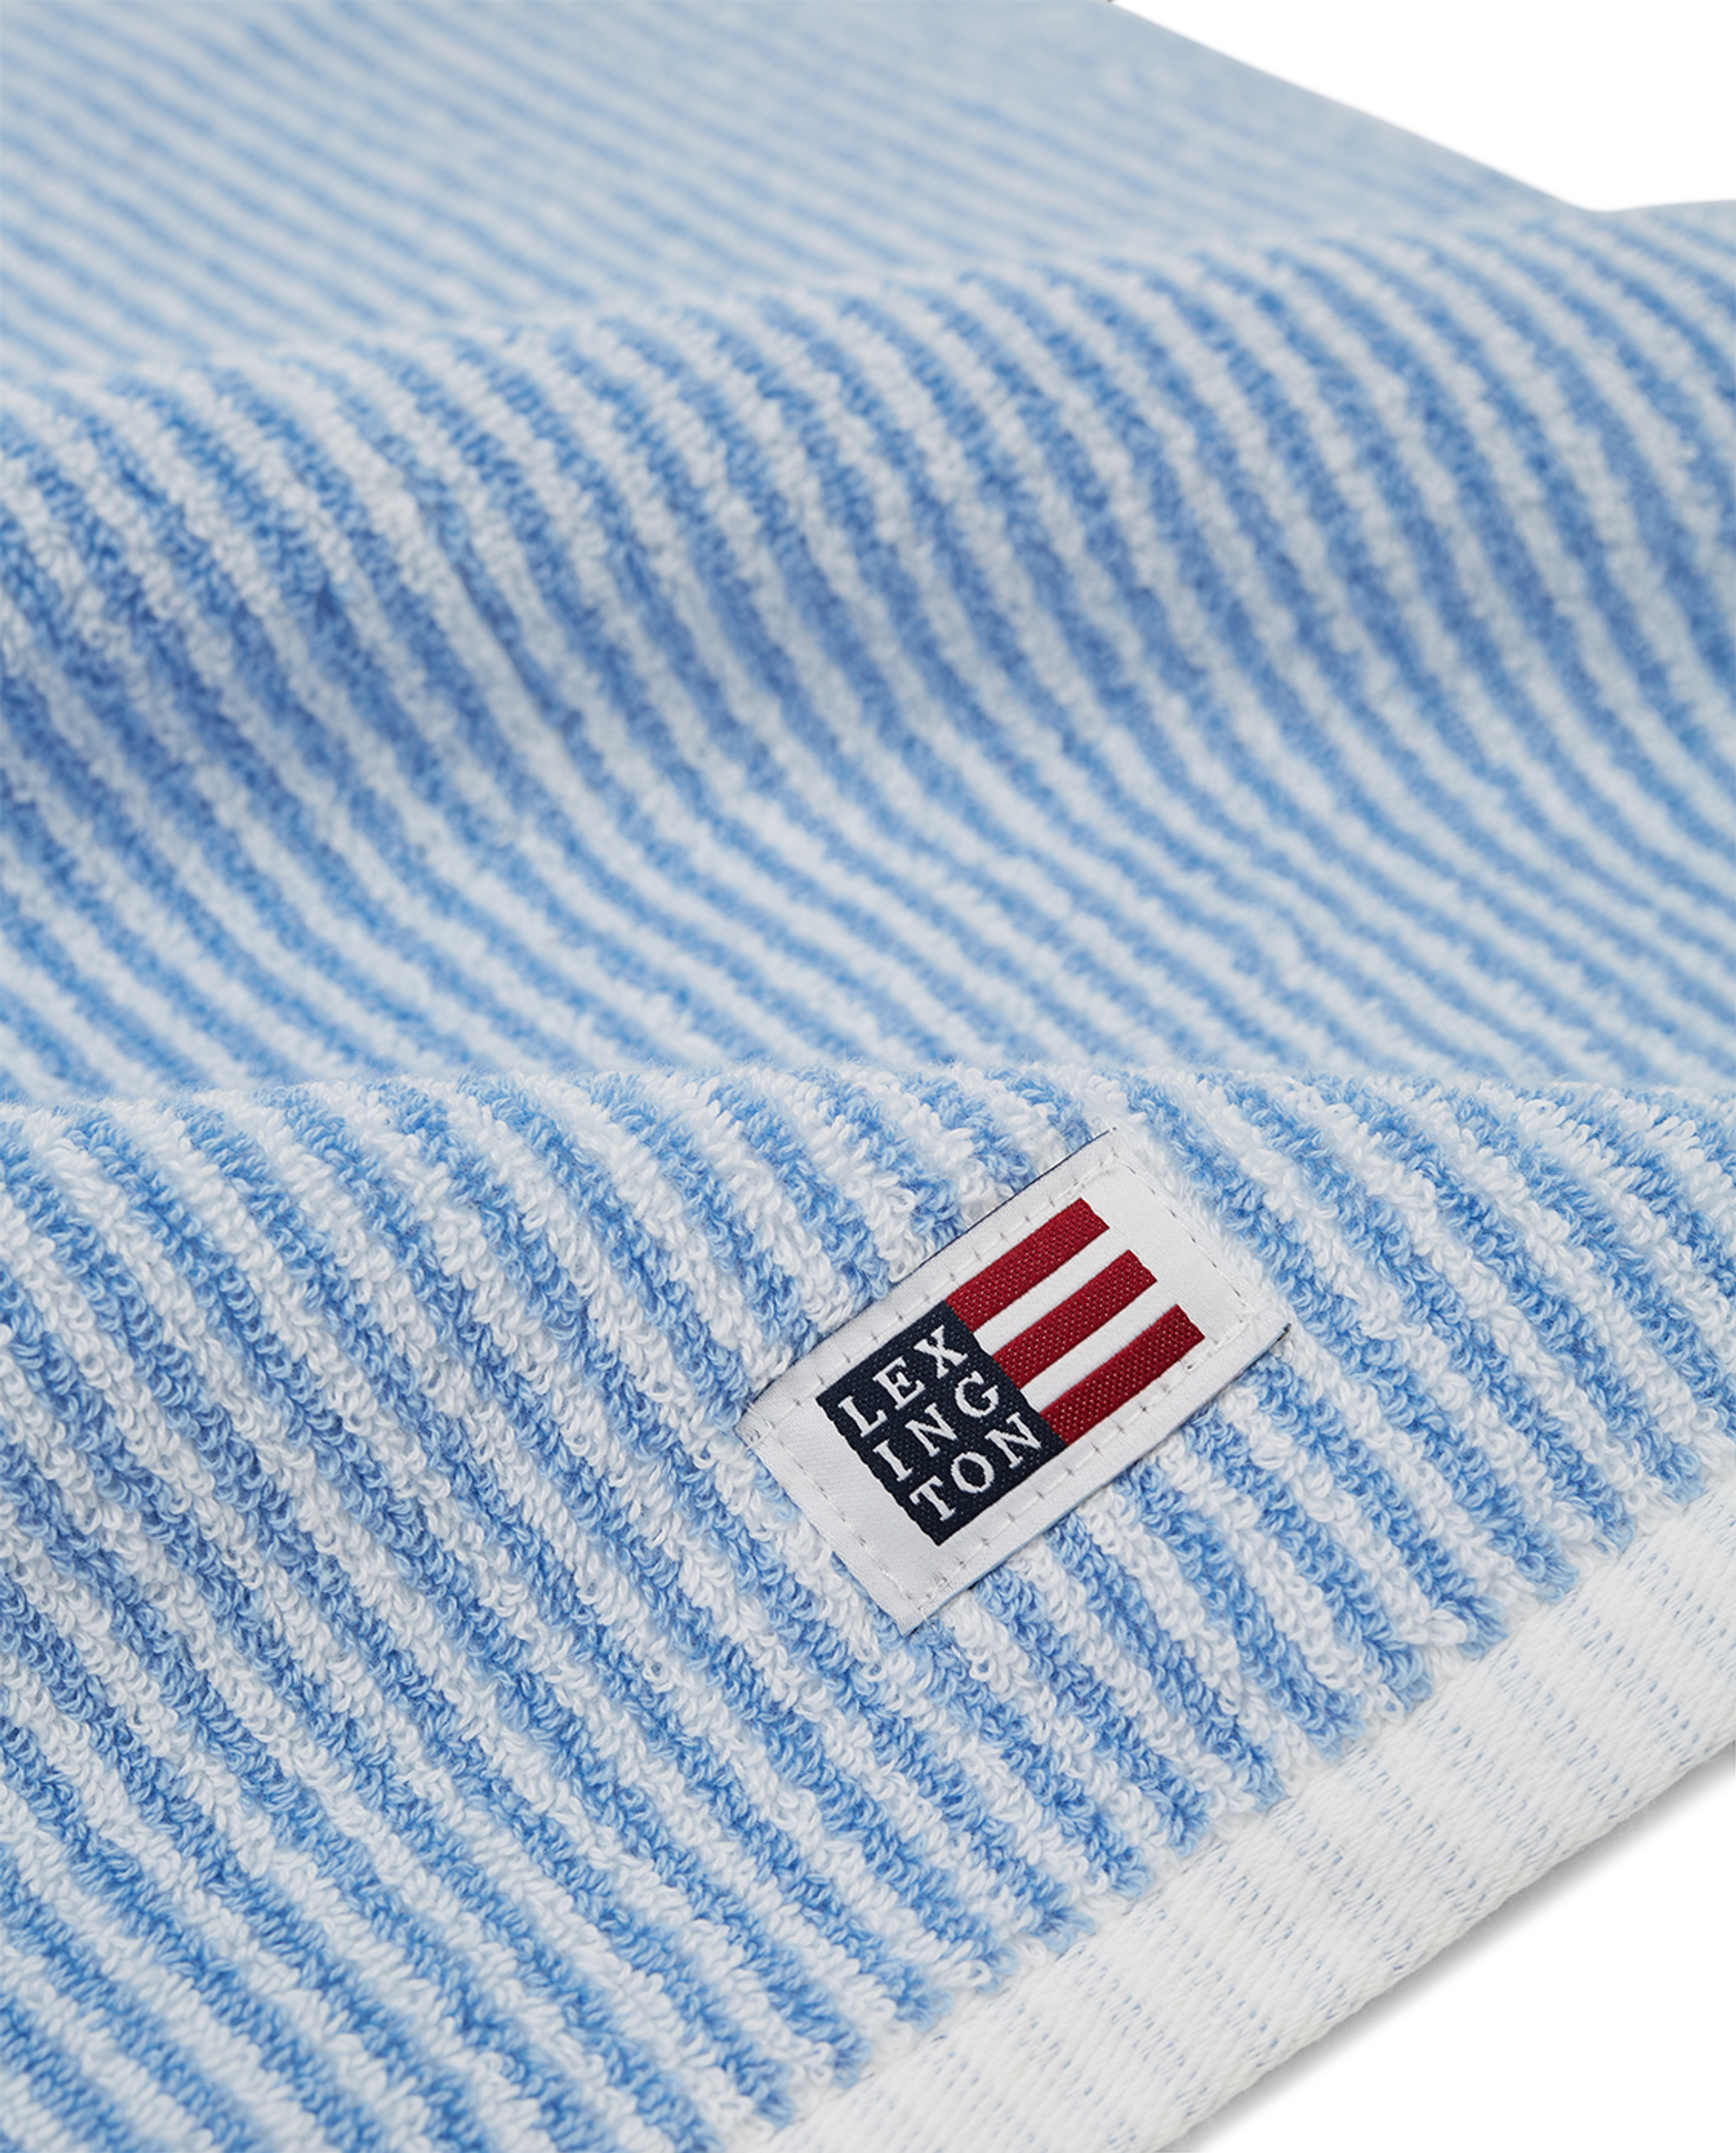 Original Towel White/Blue Striped